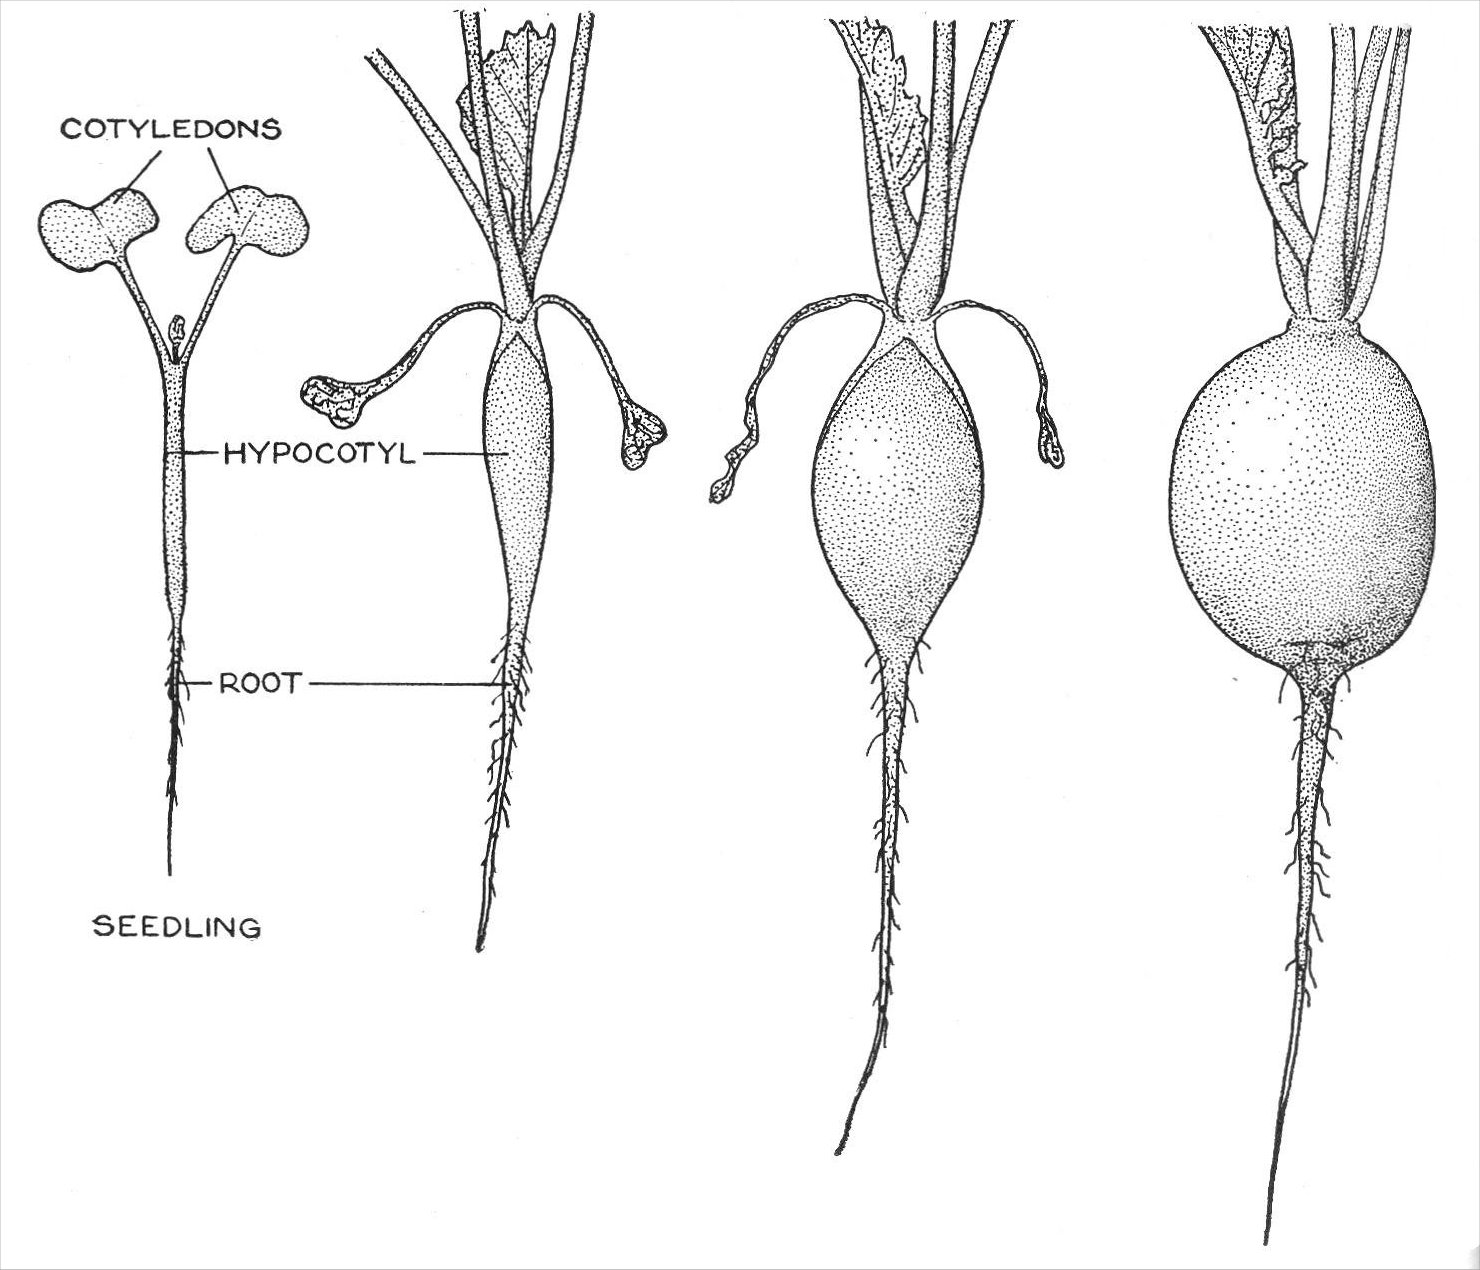 In The Radish Raph Sativa Bricaceae Short Section Of Seedling Stem Below Cotyledons Hypocotyl Swells Into A Storage Organ